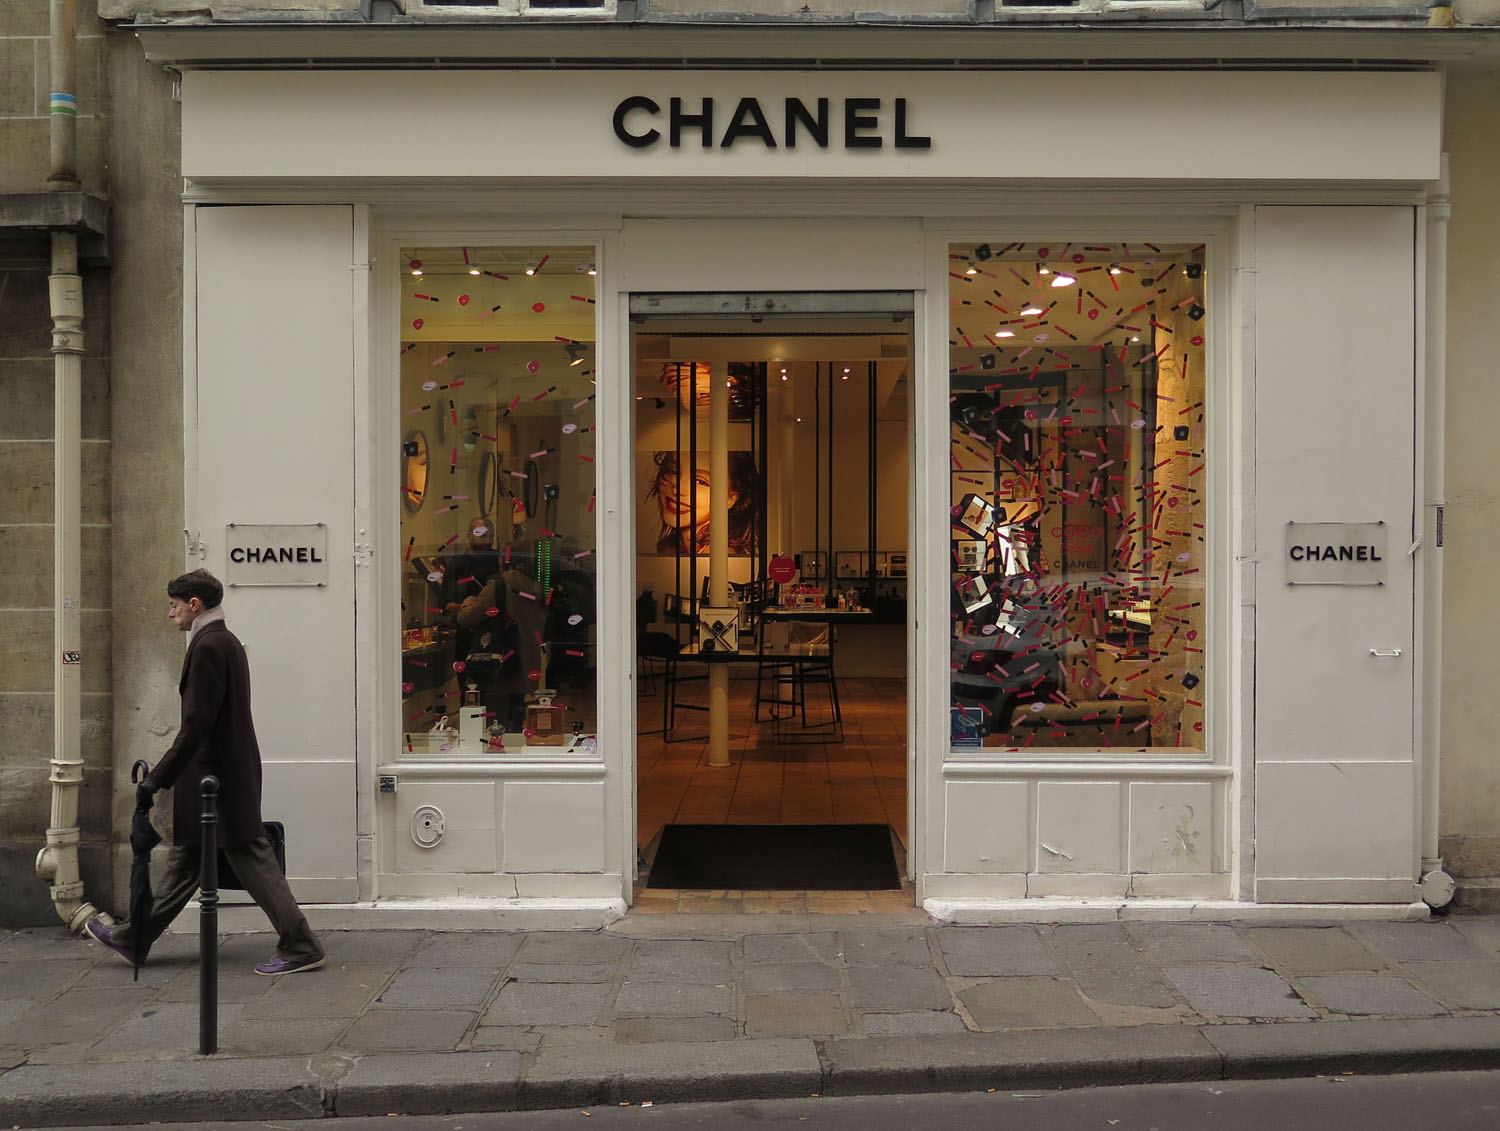 France-Paris-Street-Scenes-Chanel